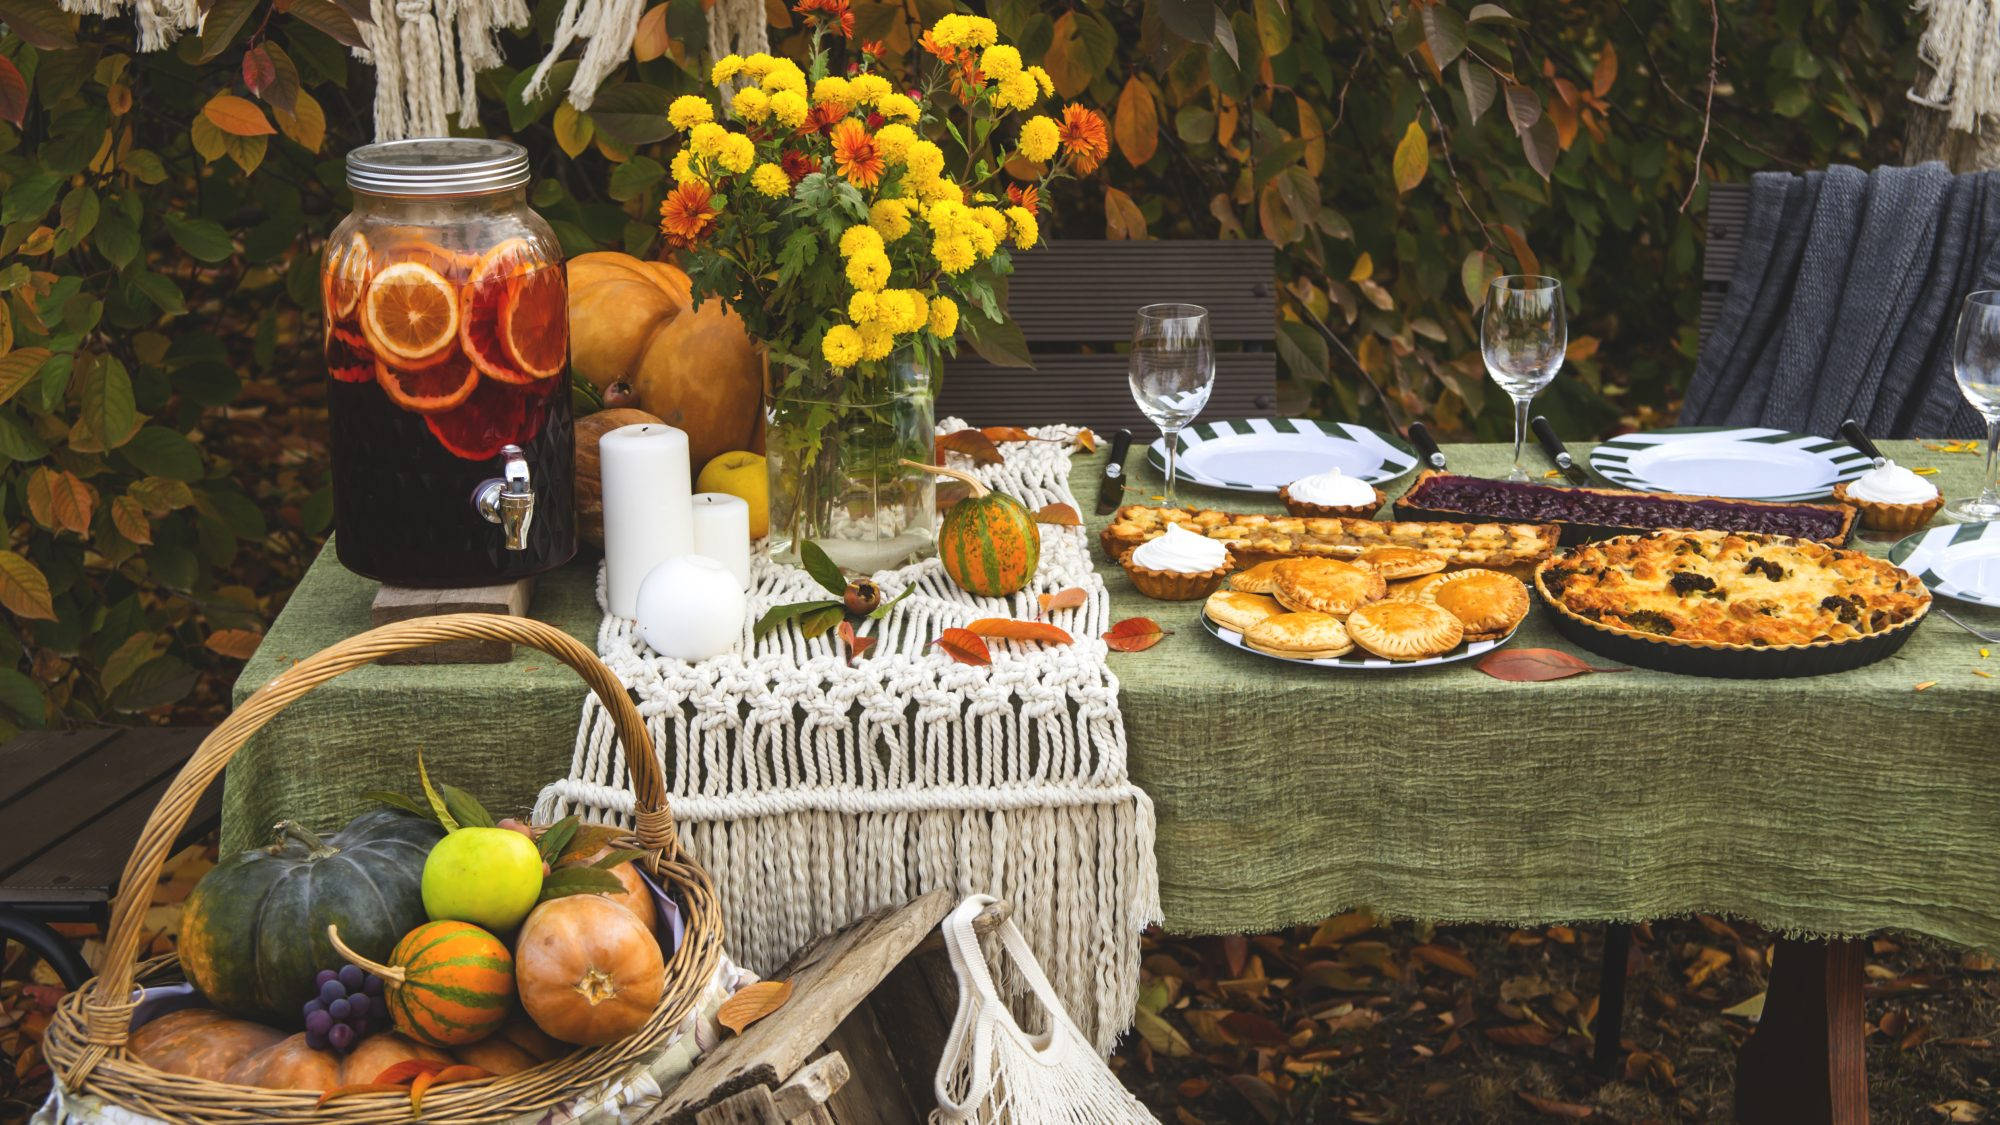 fall brunch table in the backyard with pumpkin and yellow decor.